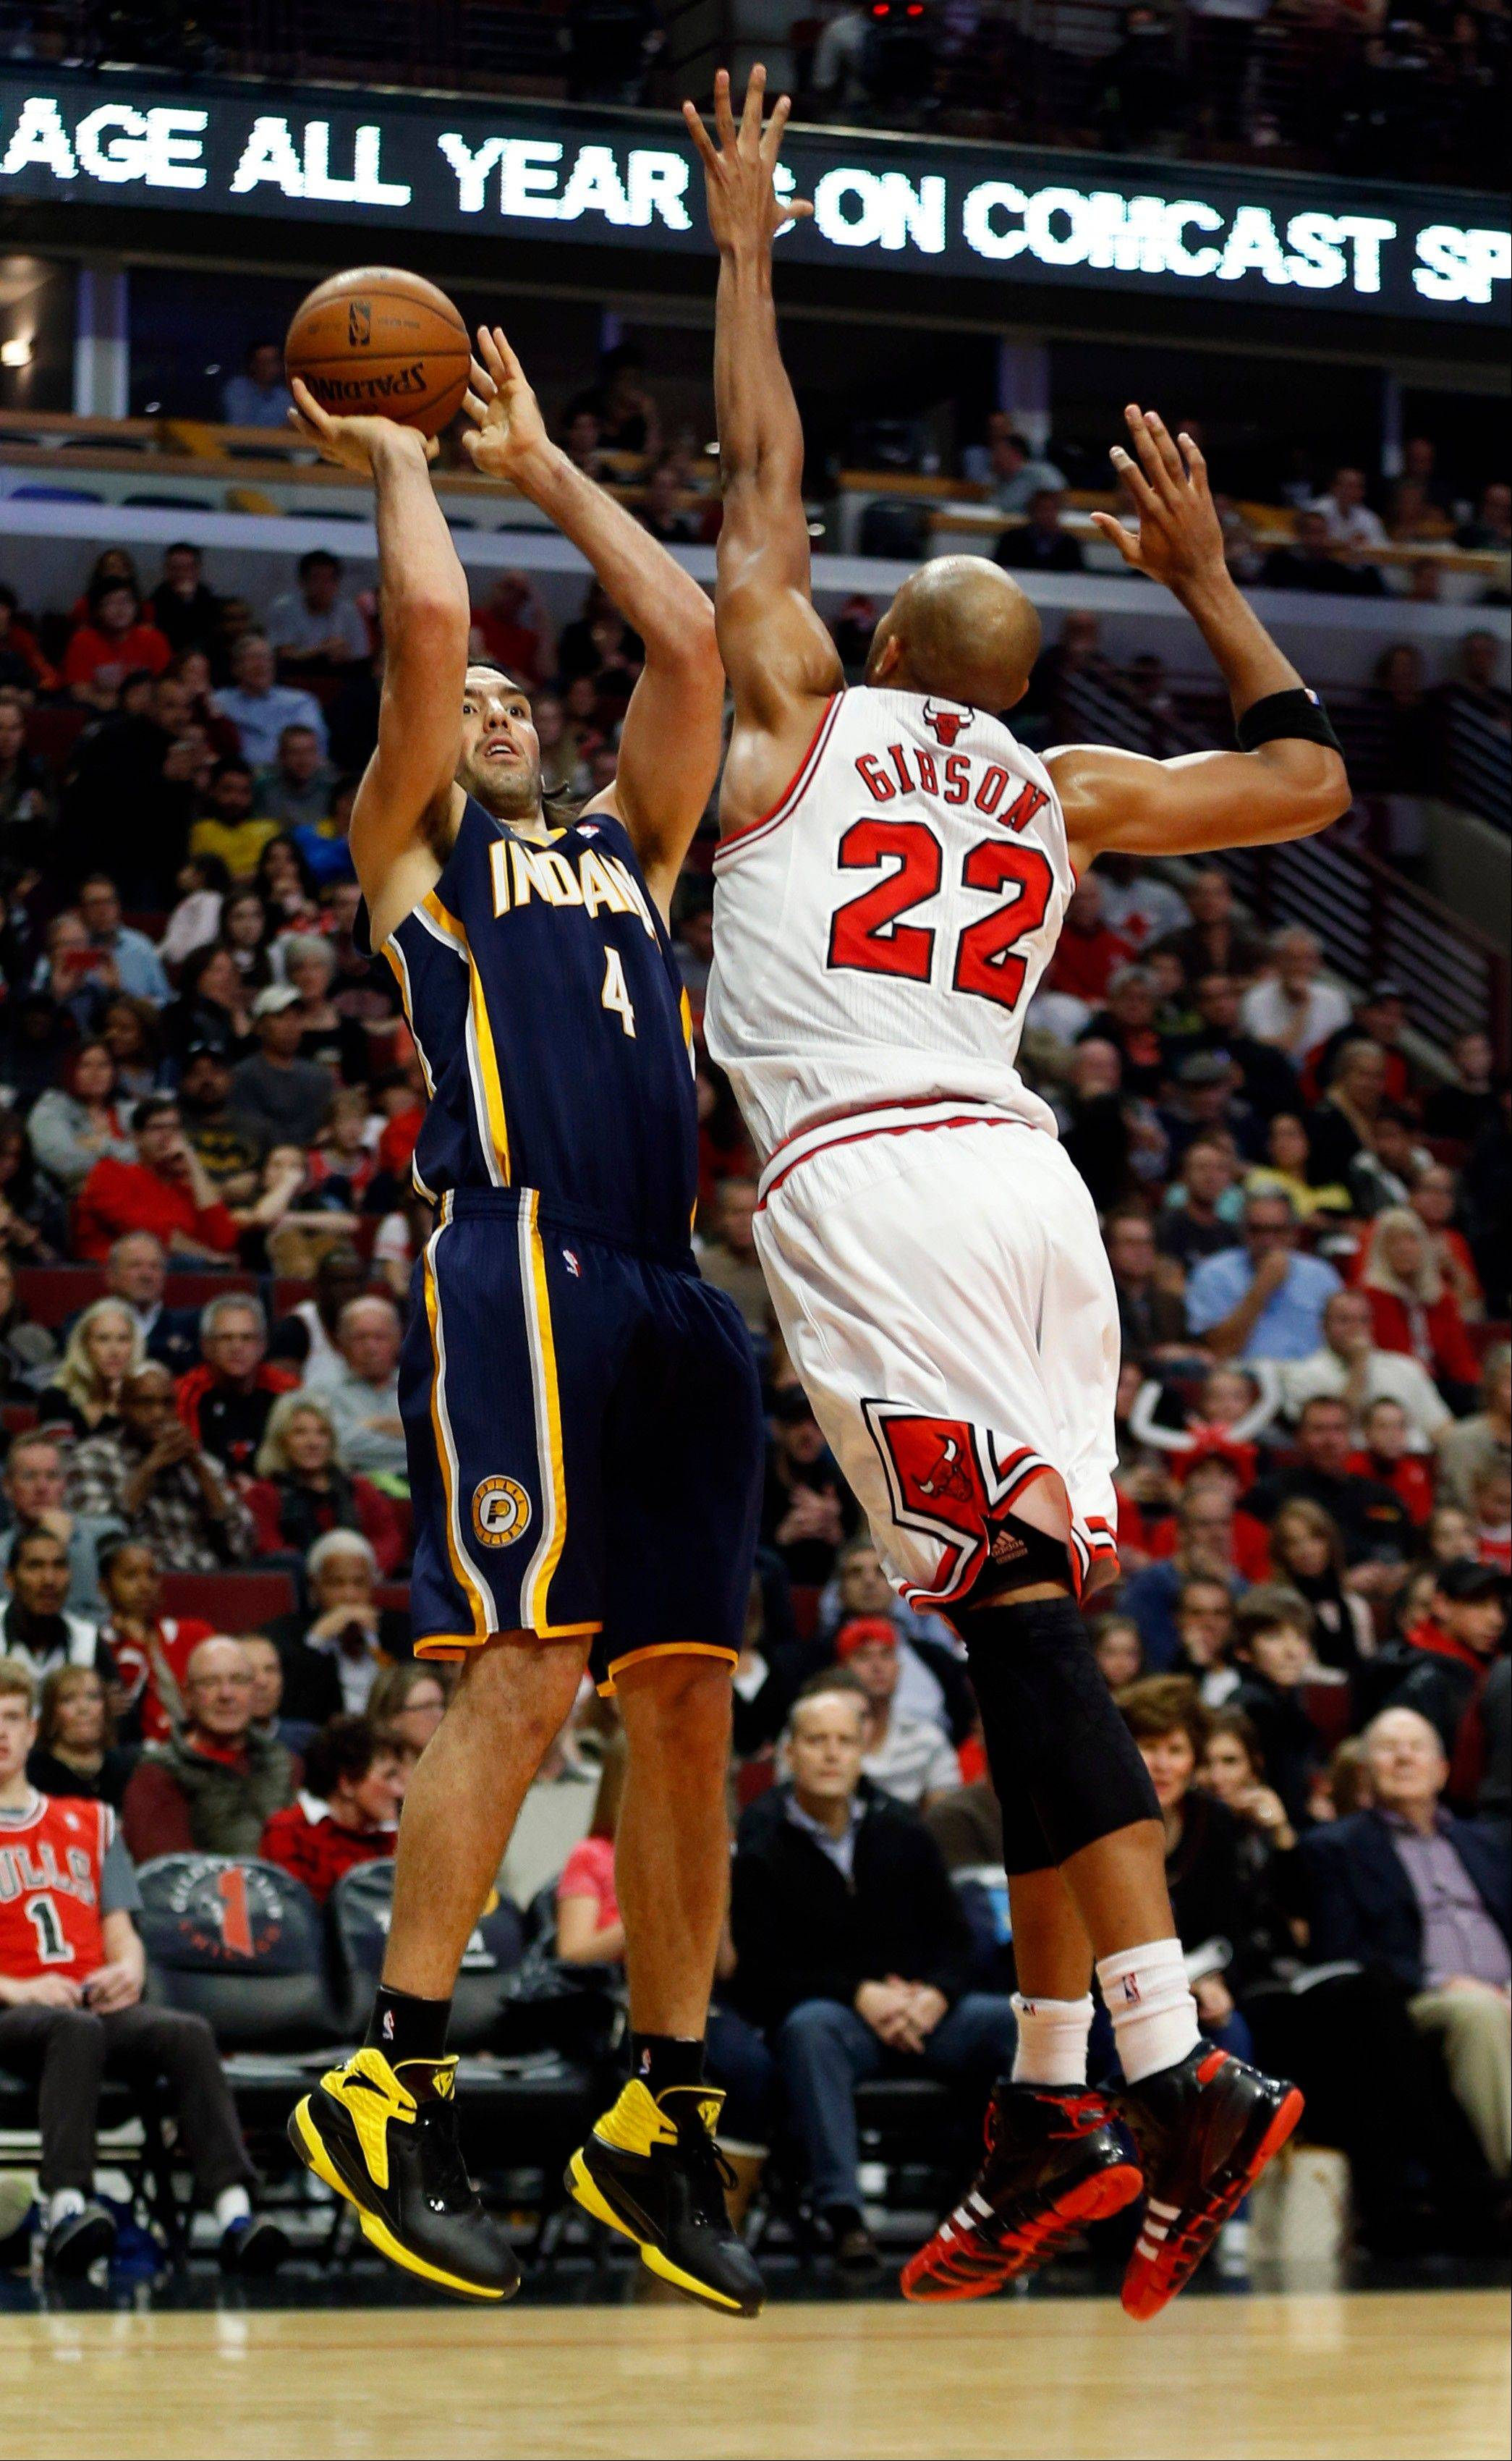 Indiana Pacers forward Luis Scola (4) shoots against Bulls forward Taj Gibson (22) during Saturday night's game at the United Center. The Bulls ended the Pacers perfect season with a 110 to 94 win.